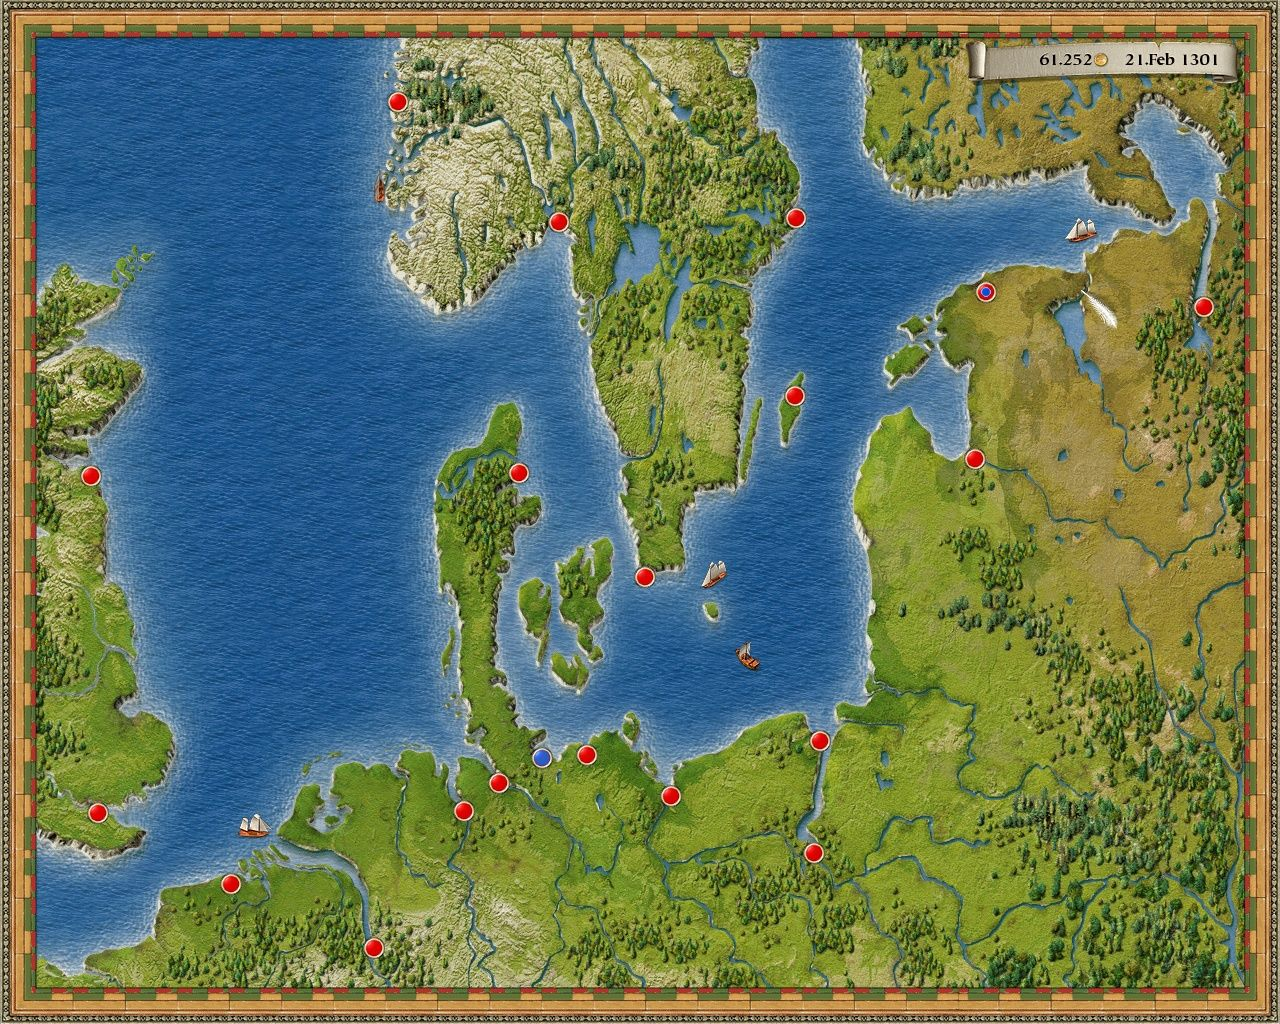 https://www.mobygames.com/images/shots/l/48529-patrician-ii-quest-for-power-windows-screenshot-the-map-shows.jpg